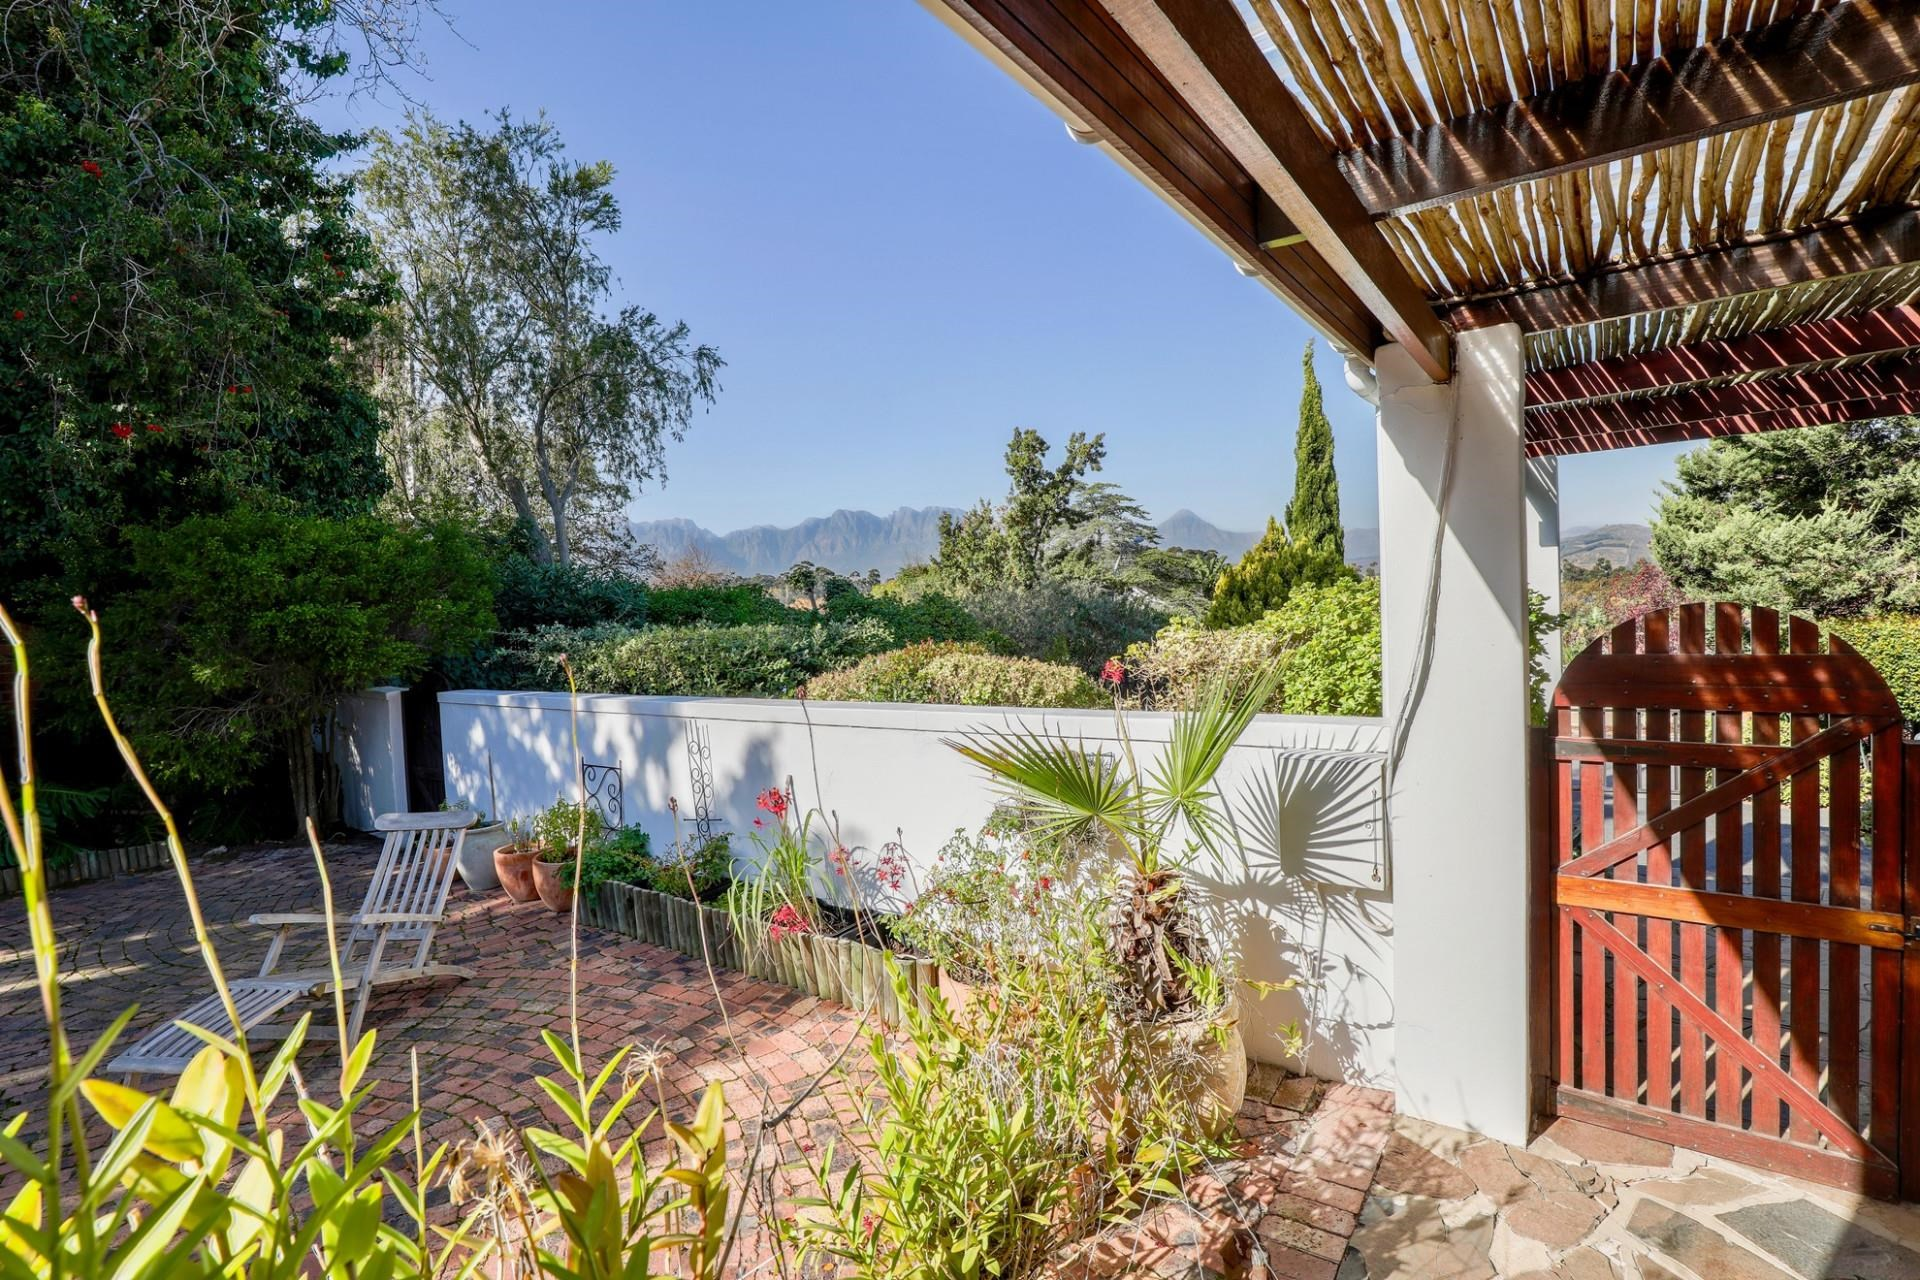 3 Bedroom House for Sale in Montclair